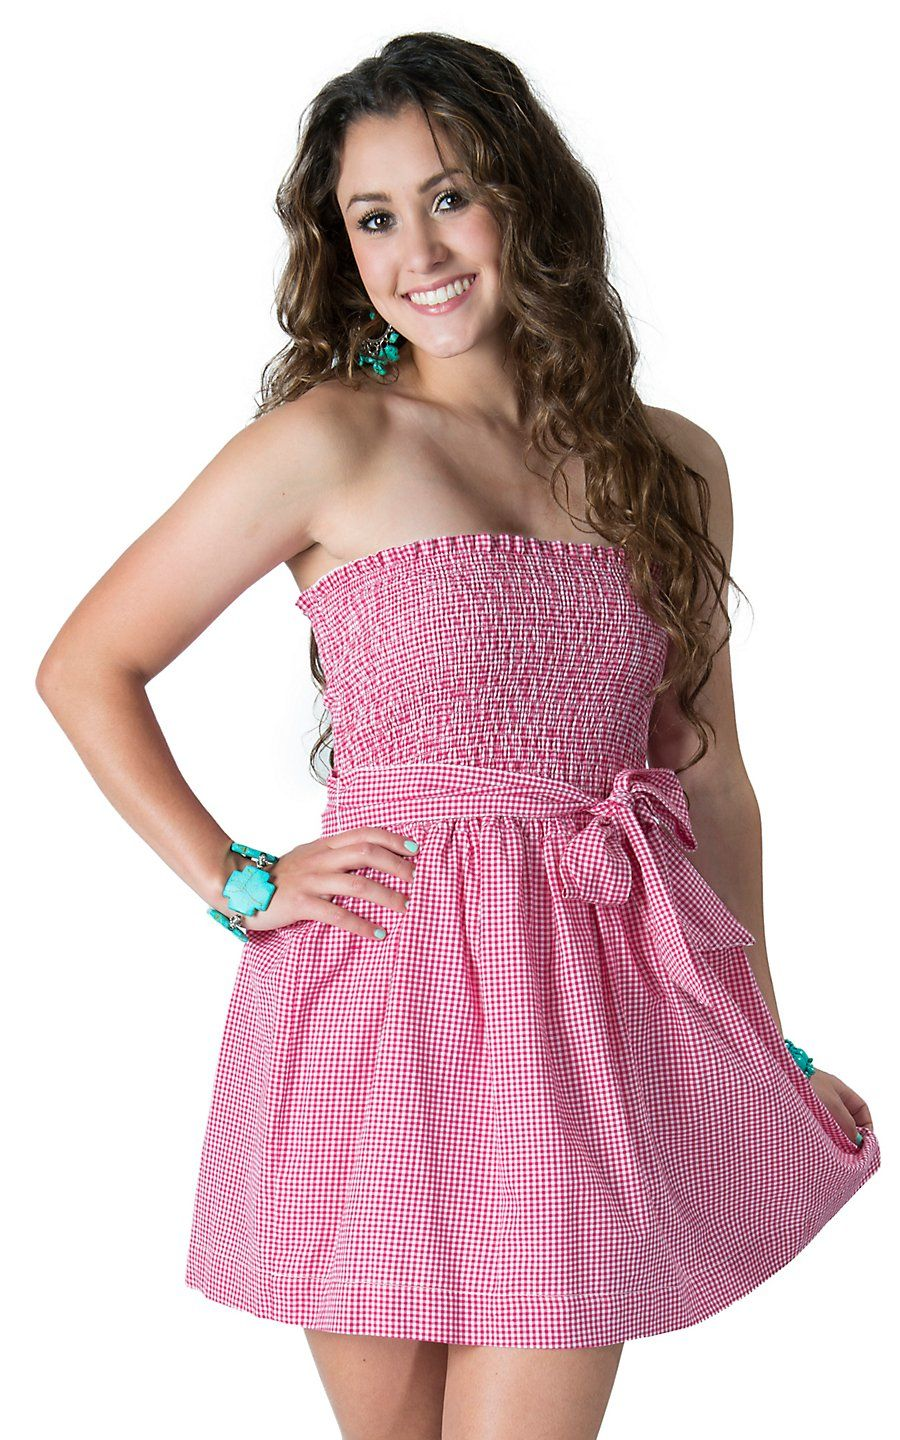 cc539f0e29e6 Panhandle Slim Women's Hot Pink & White Gingham Print Smocked Strapless  Dress